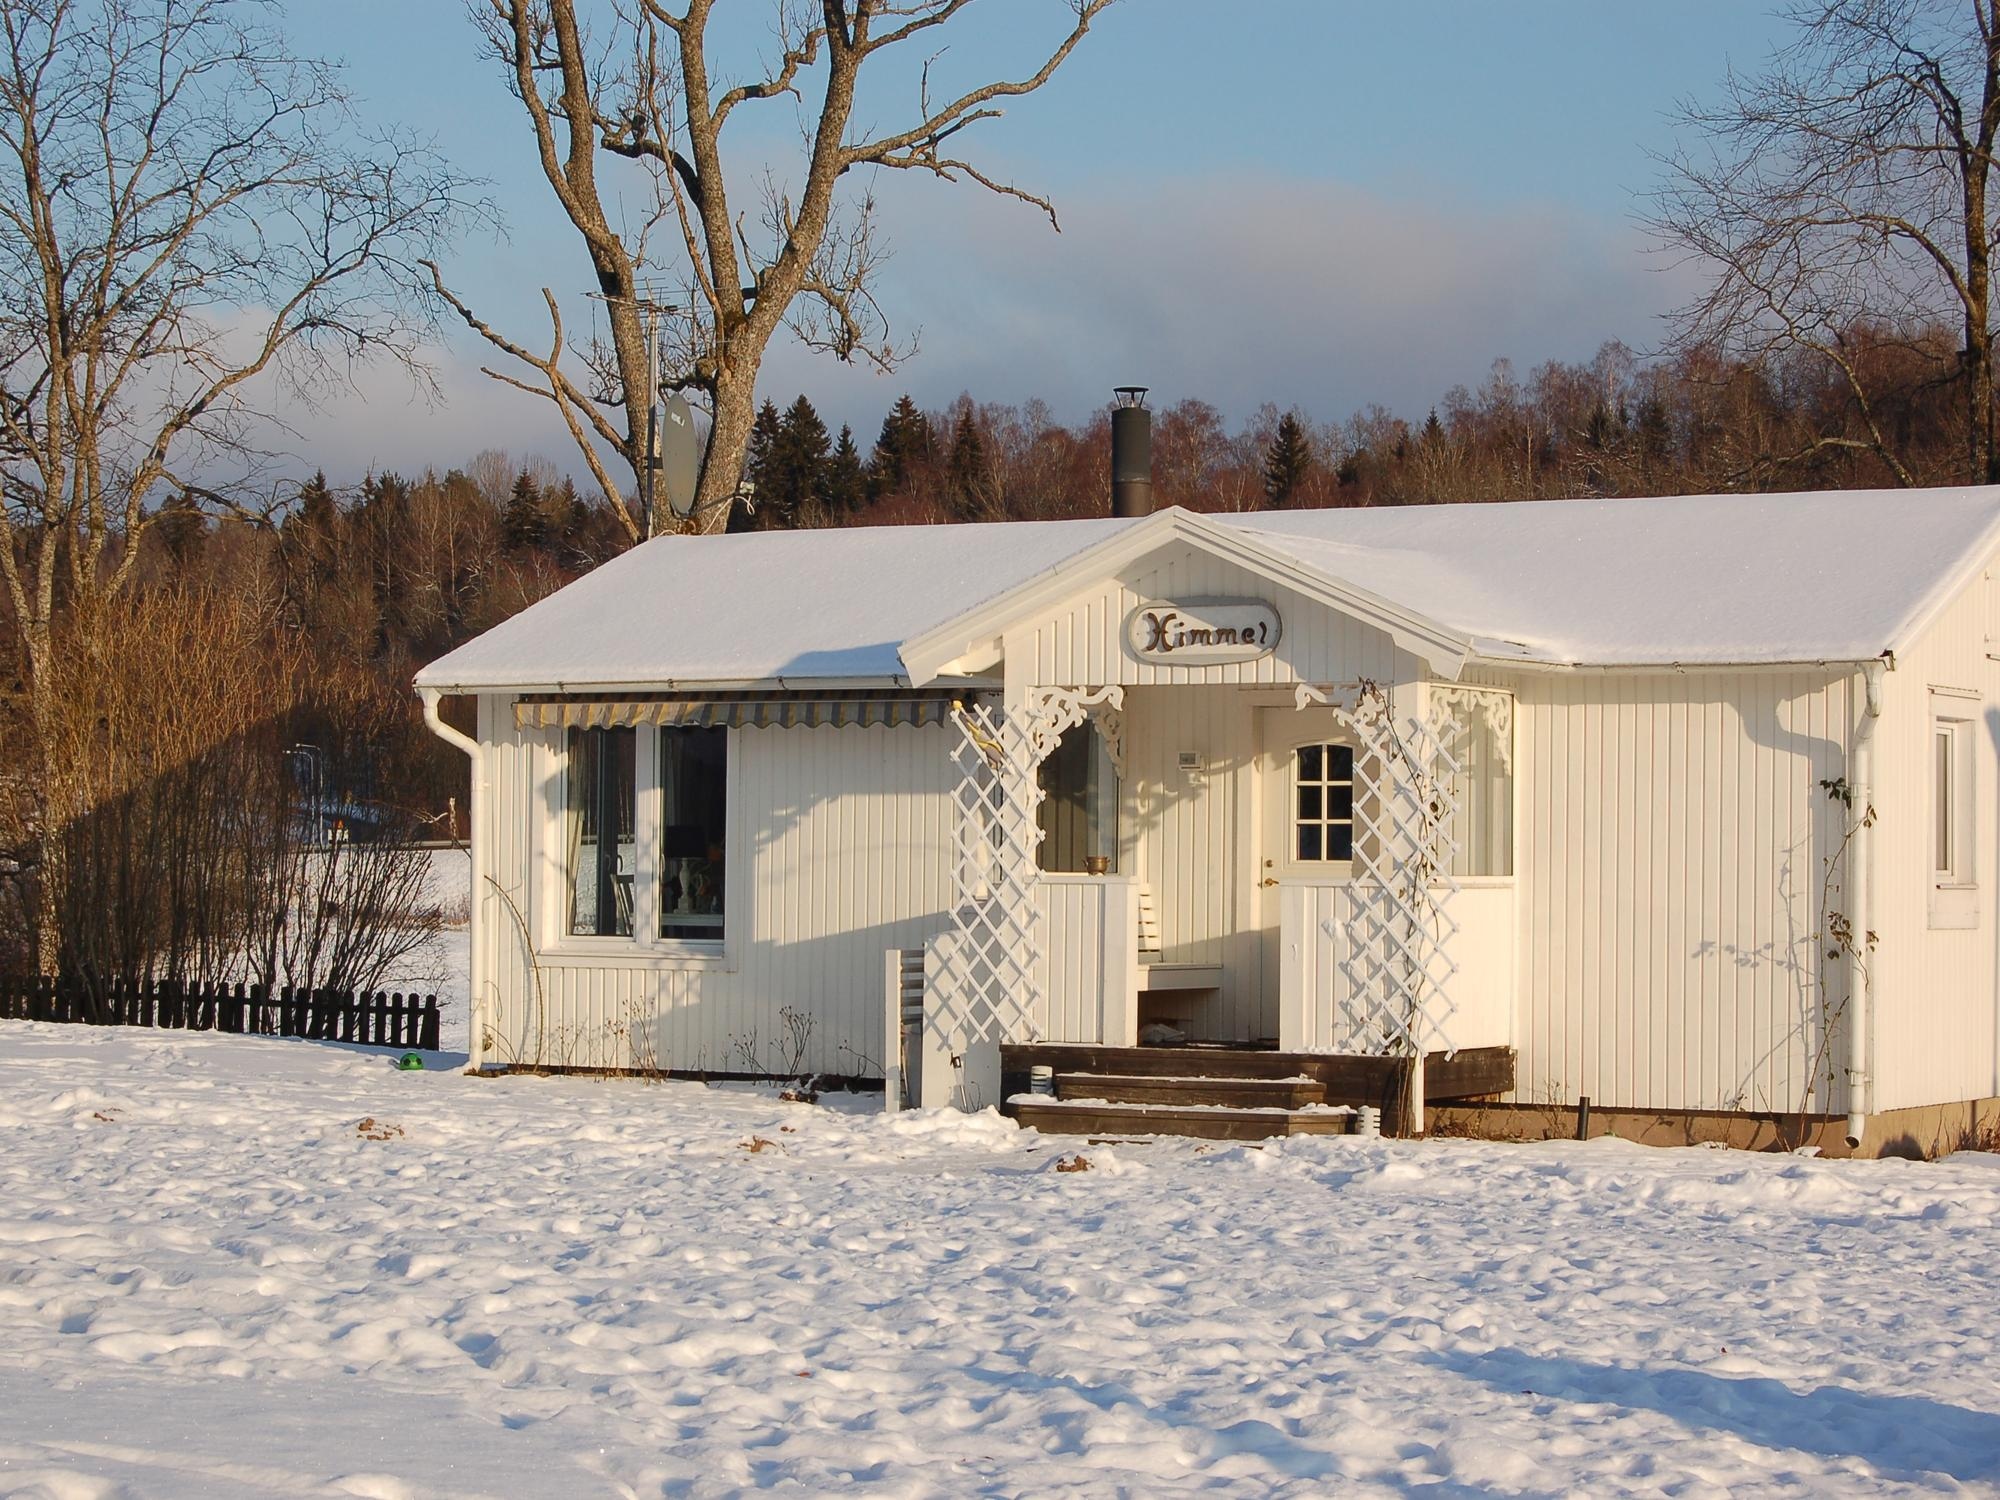 Himmelbungalow im Winter